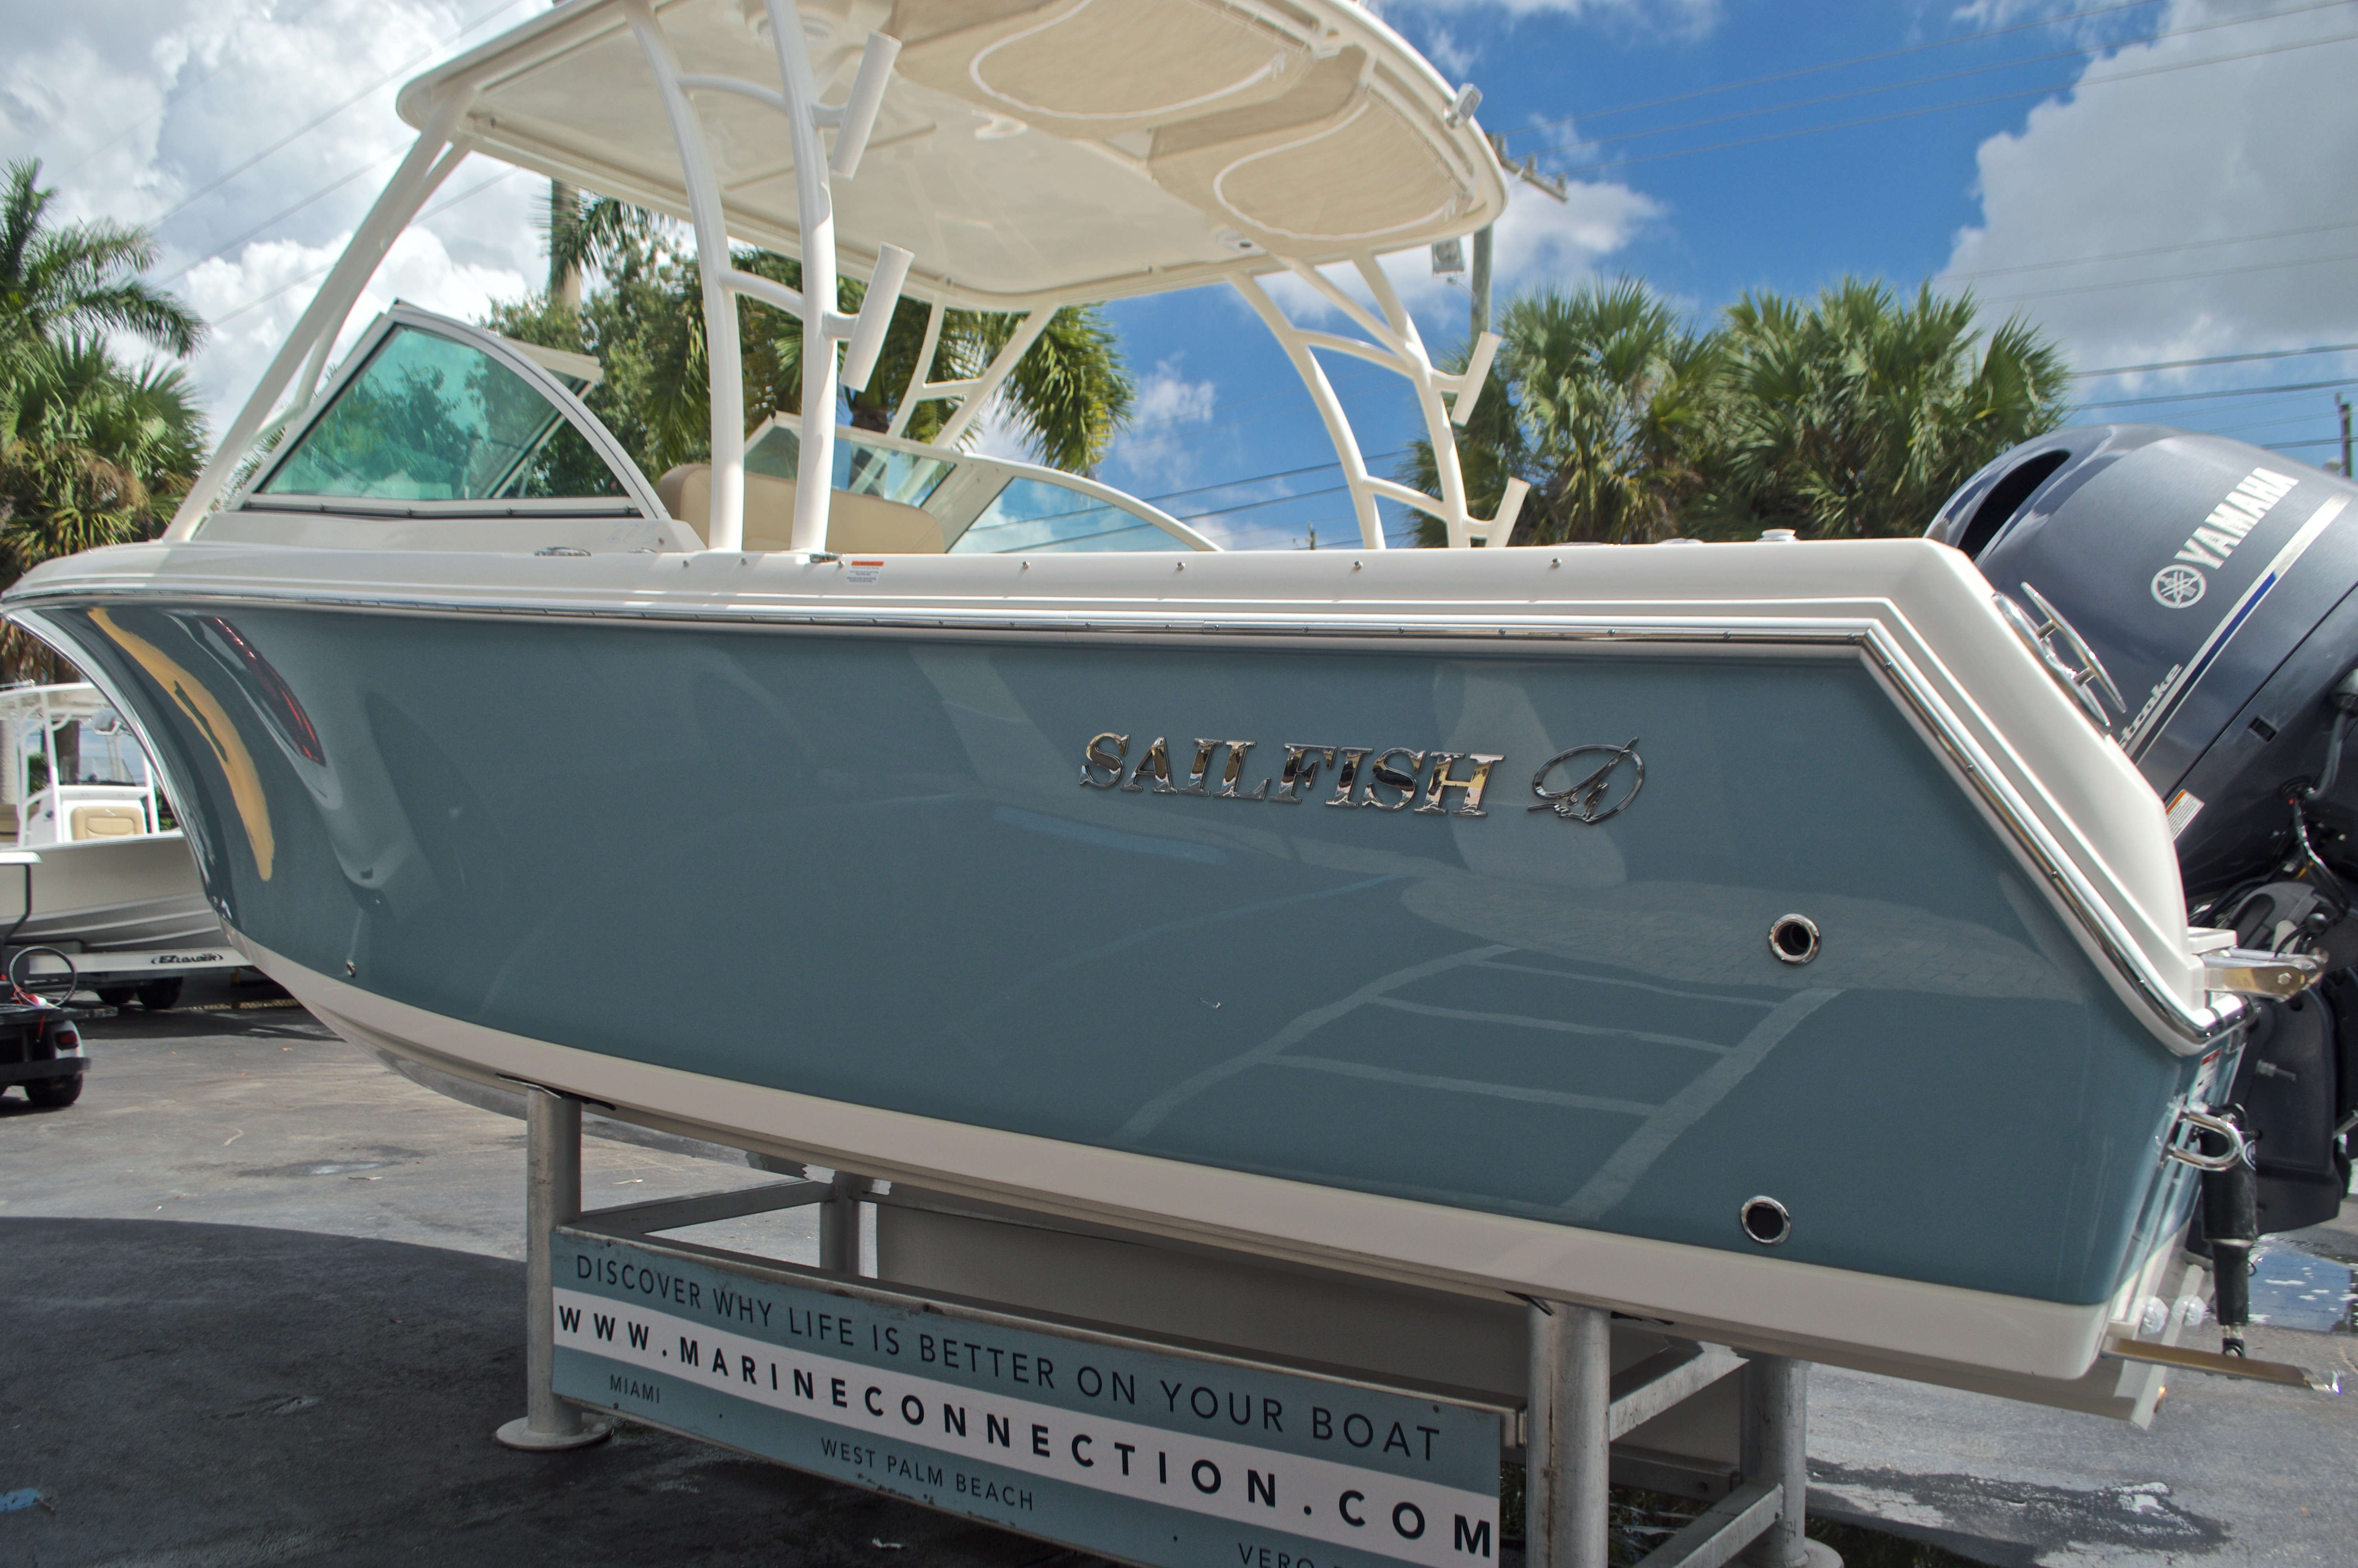 Thumbnail 6 for New 2017 Sailfish 275 Dual Console boat for sale in Vero Beach, FL